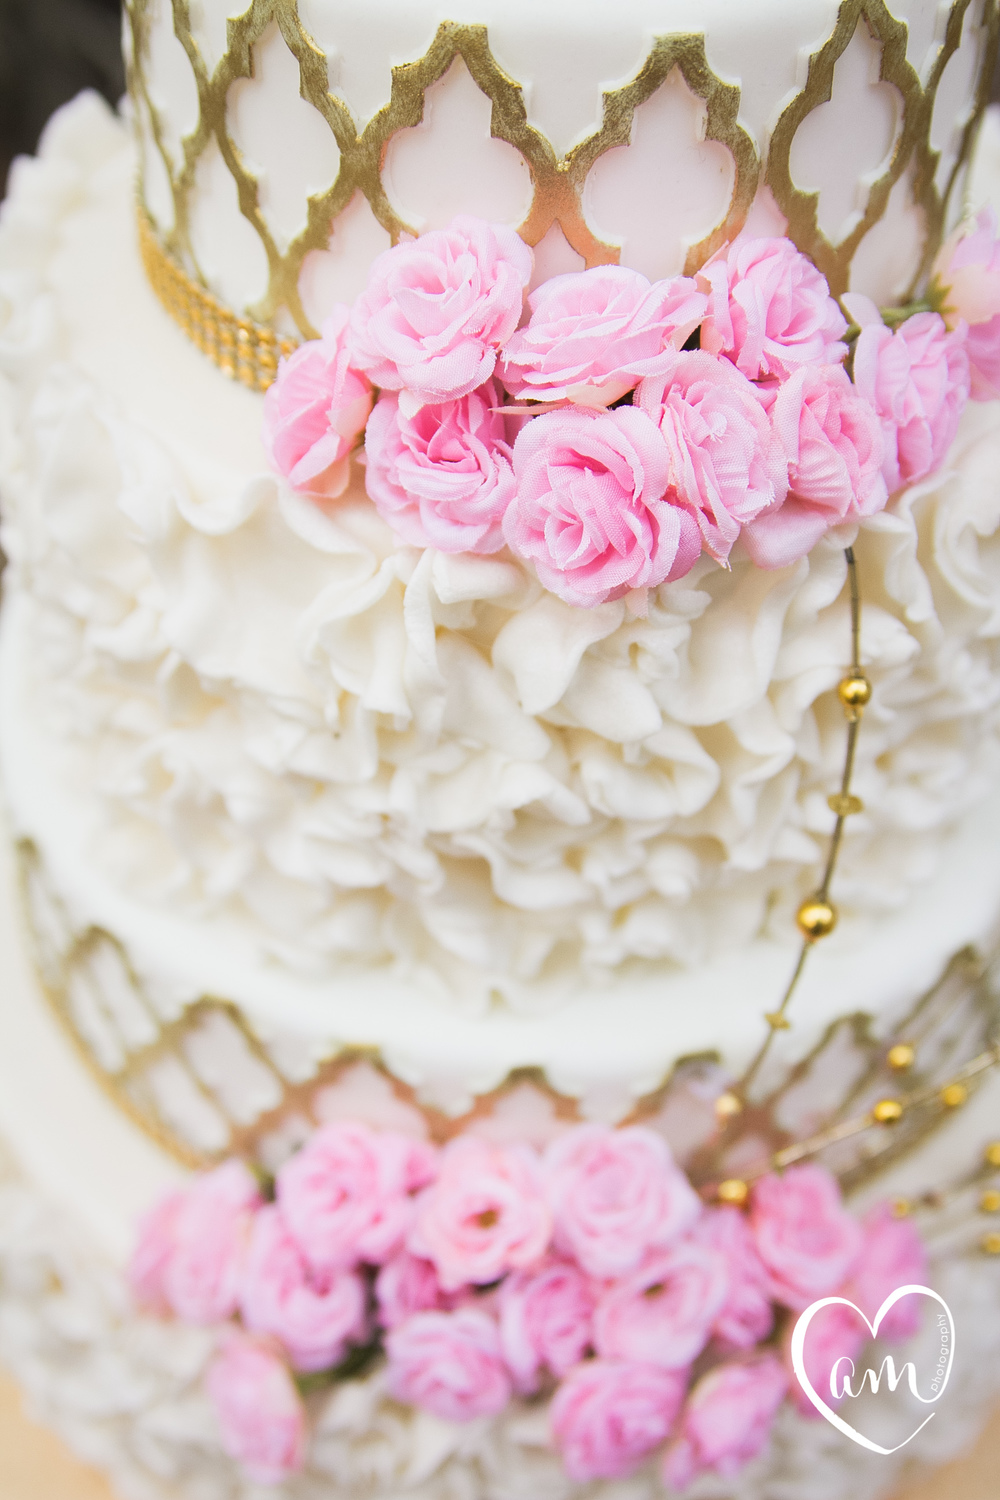 Pink and gold wedding cake photographed by Florida Destination Wedding Photographer